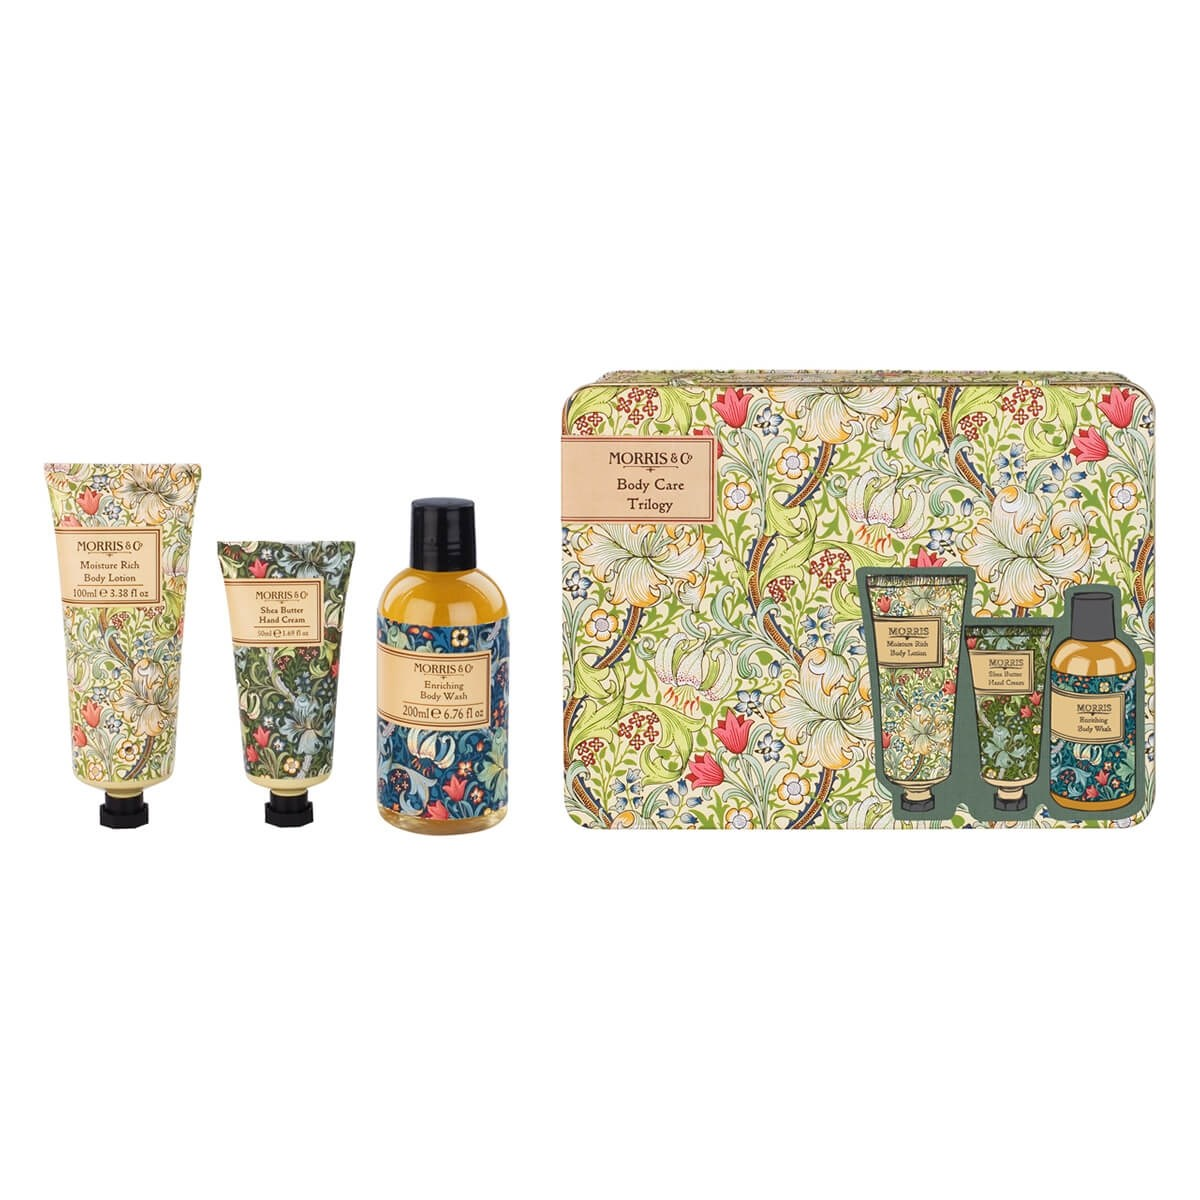 Morris & Co Golden Lily Body Care Trilogy